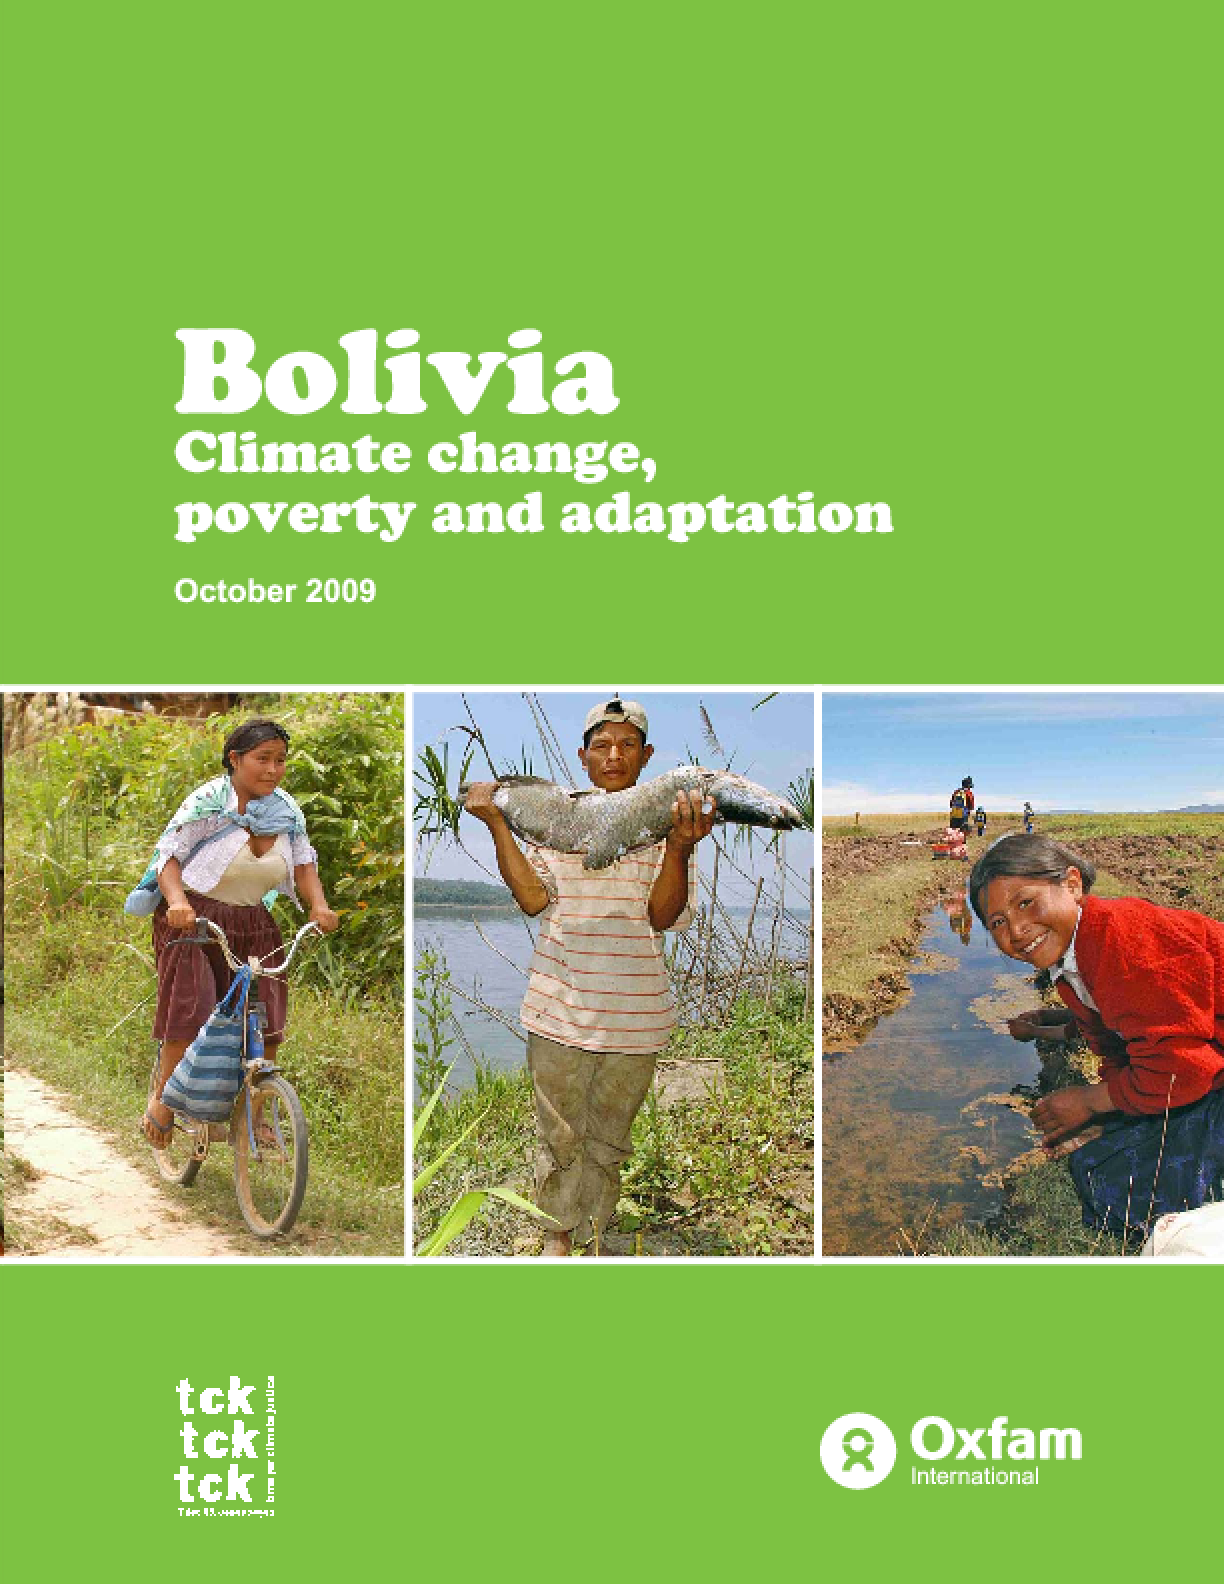 Bolivia: Climate change, poverty and adaptation